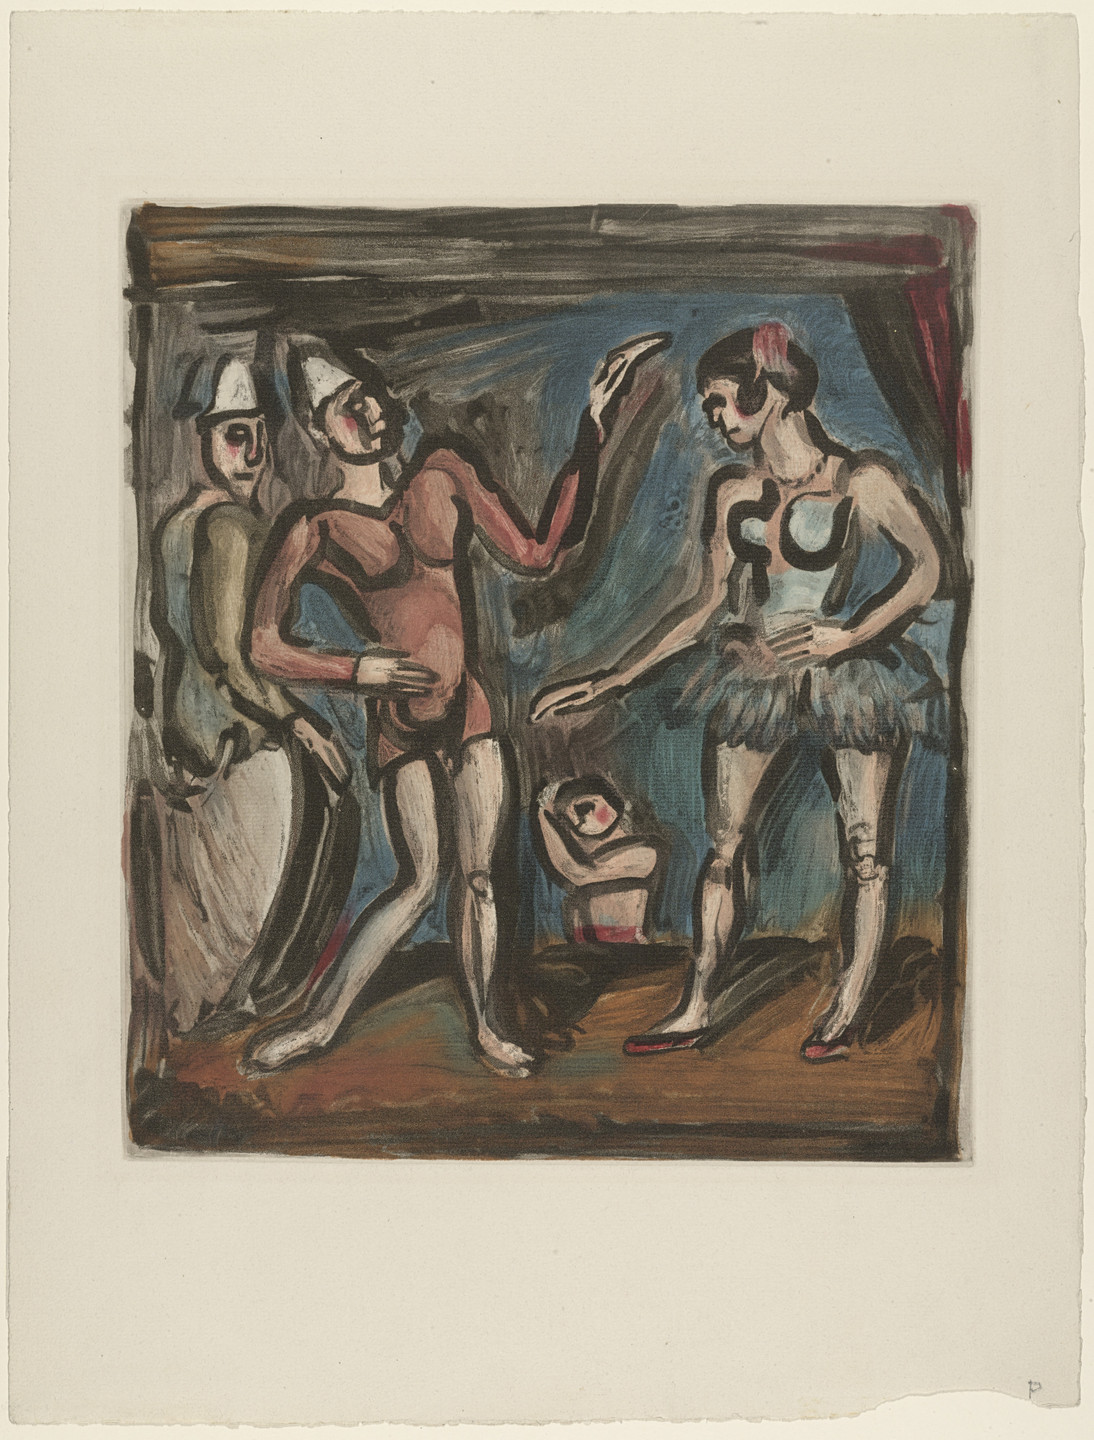 Georges Rouault. The Side Show from Cirque. 1930